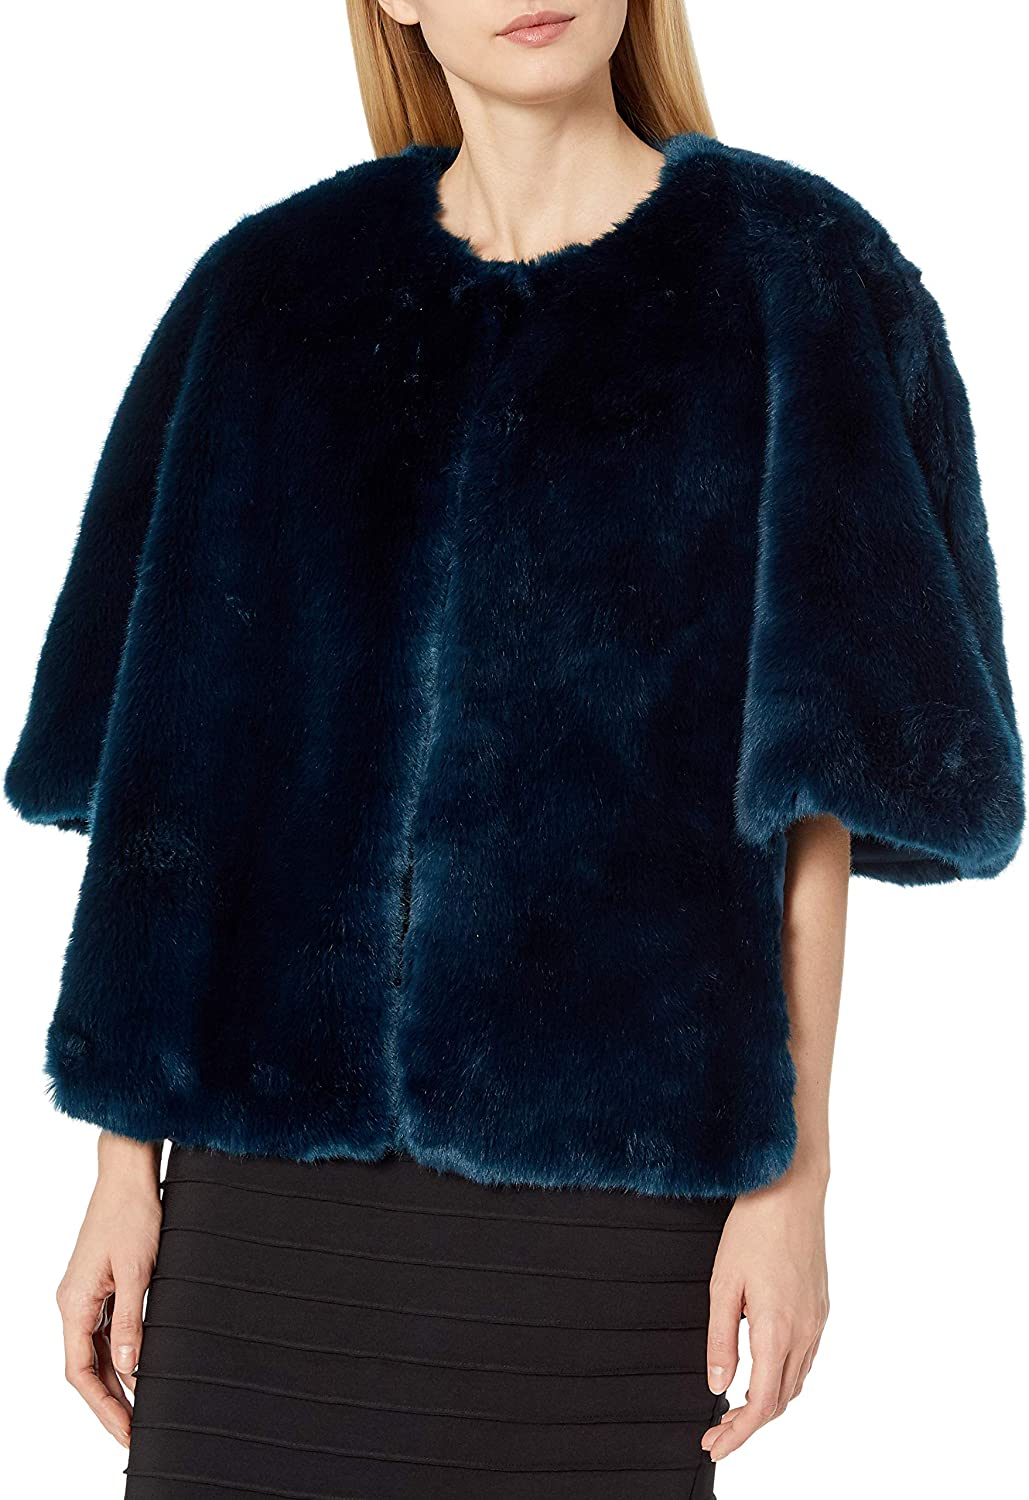 Adrianna Papell womens FAUX FUR JACKET Faux-Fur Coat